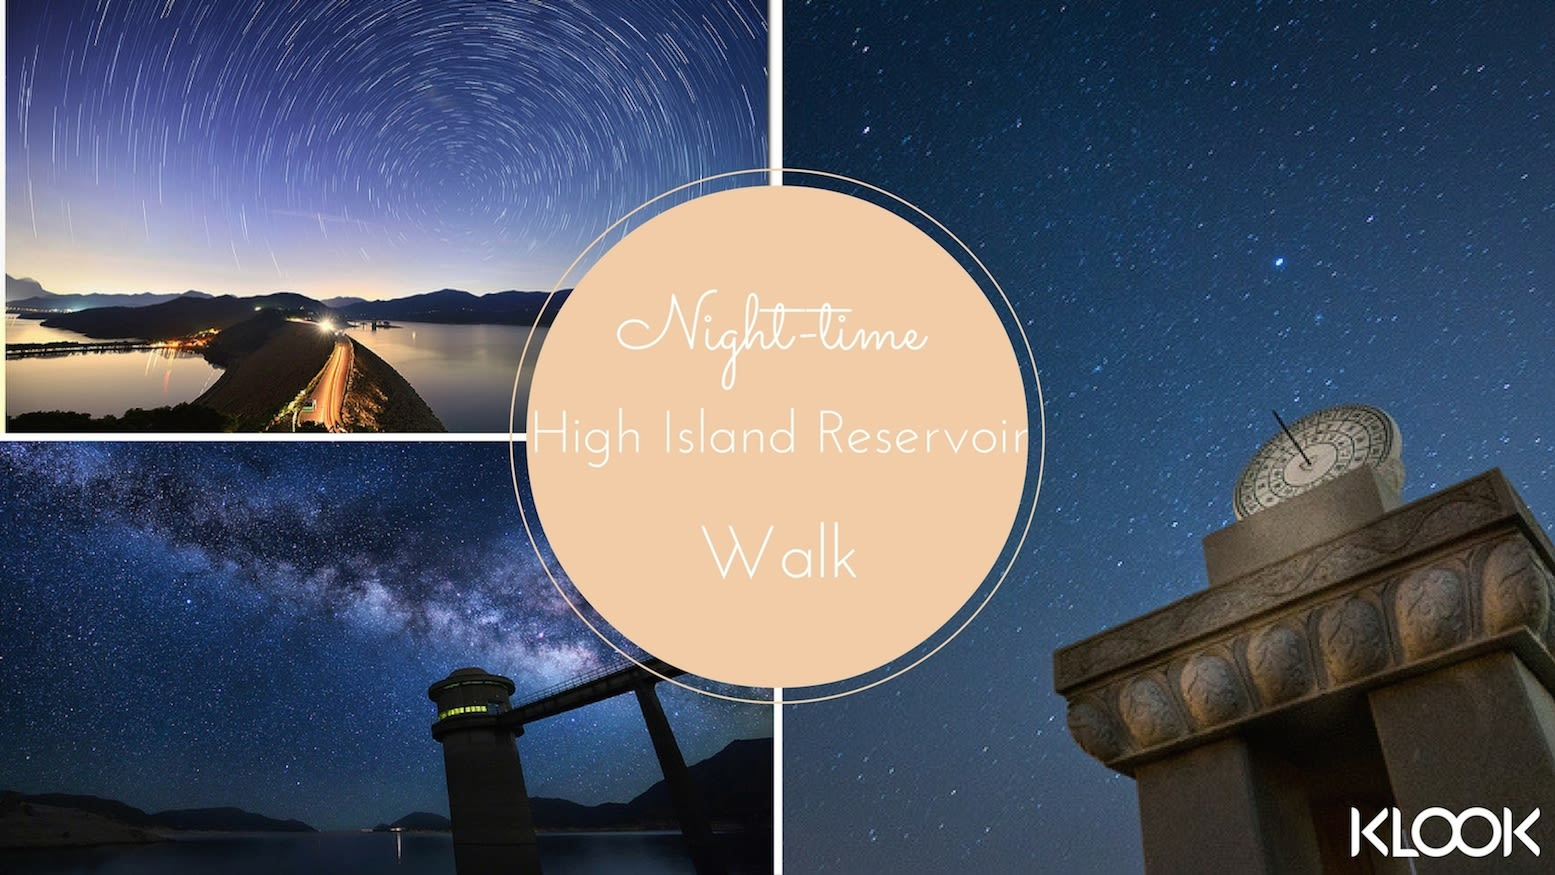 hiking, hiking trail, hiking in hong kong, hiking with lover, hiking with boyfriend, hiking with girlfriend, hiking at night, High Island Reservoir West Dam, Hong Kong Astropark, Sai Kung Astropark